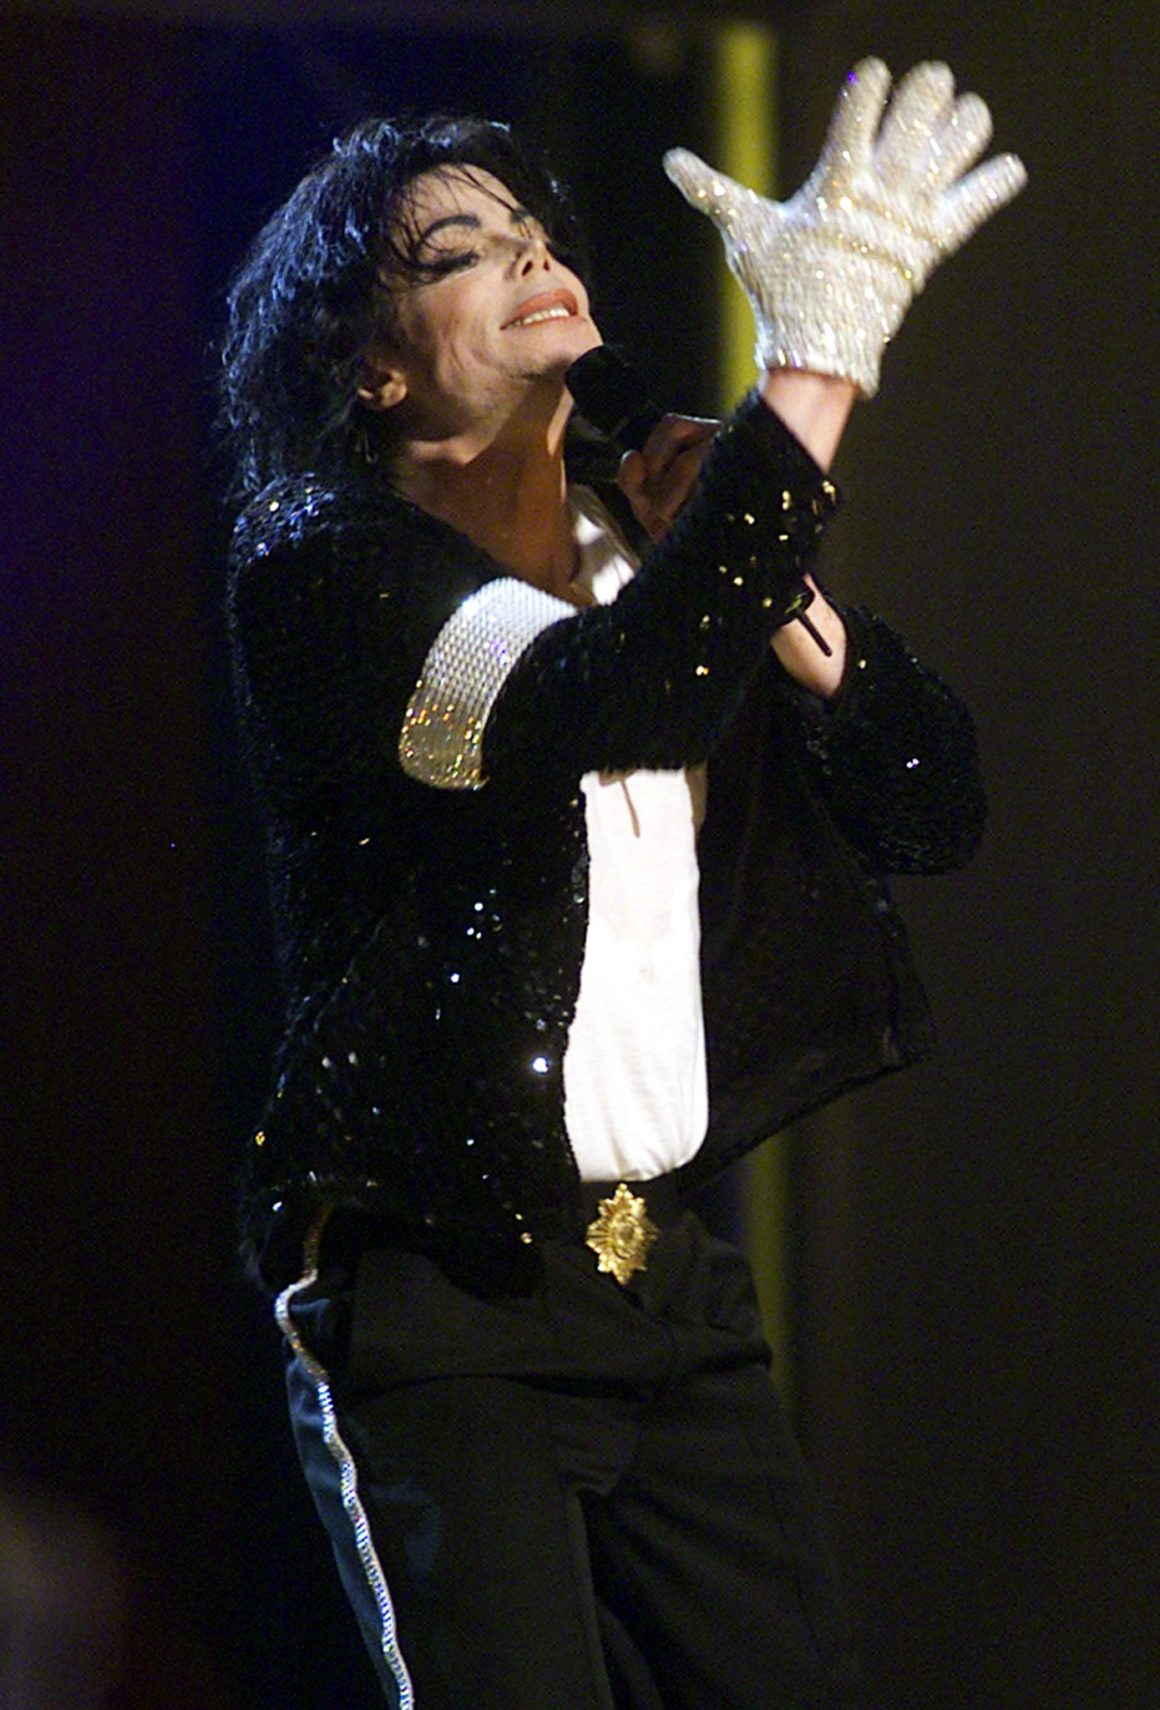 Michael Jackson sports a white glove during his fi